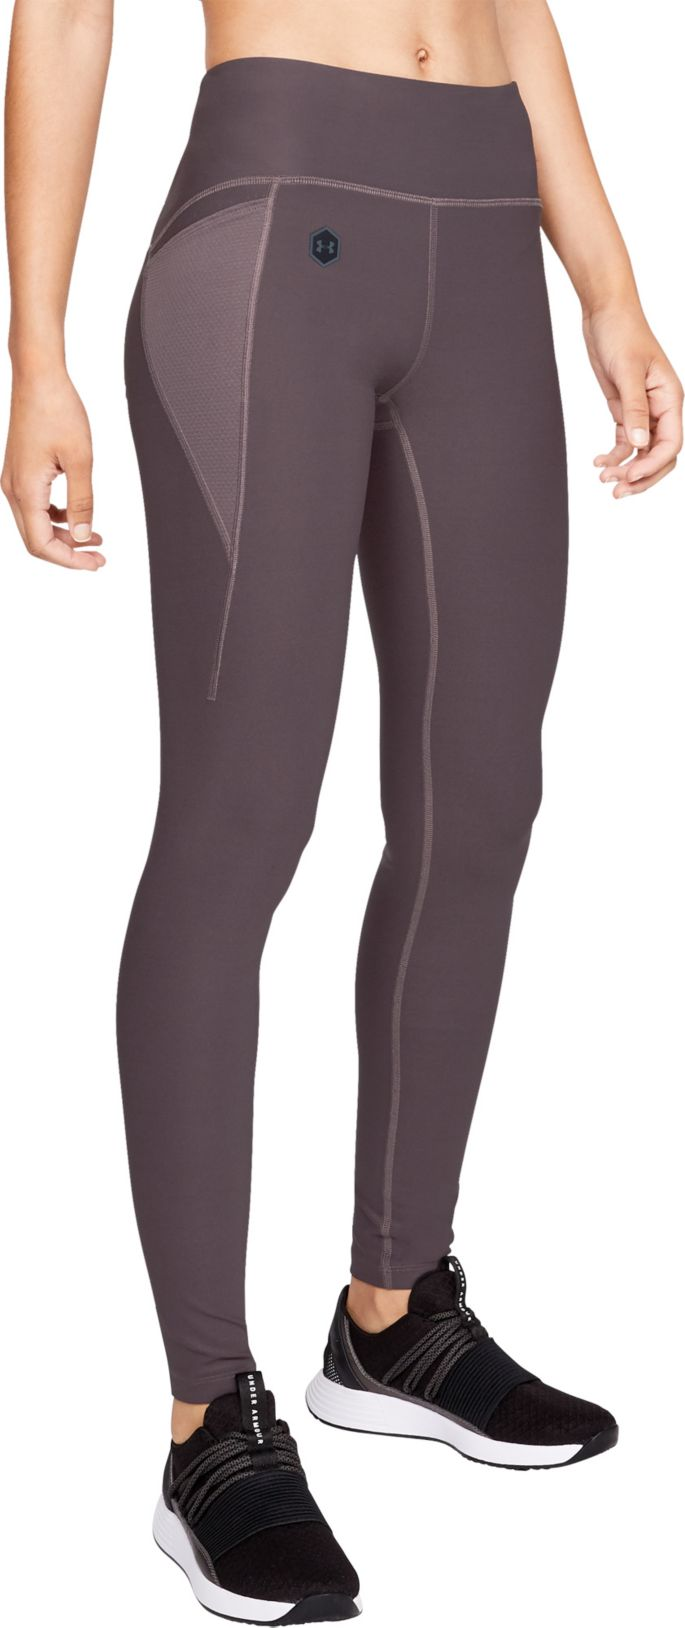 new specials hot new products quality design Under Armour Women's RUSH Compression Leggings | DICK'S Sporting Goods